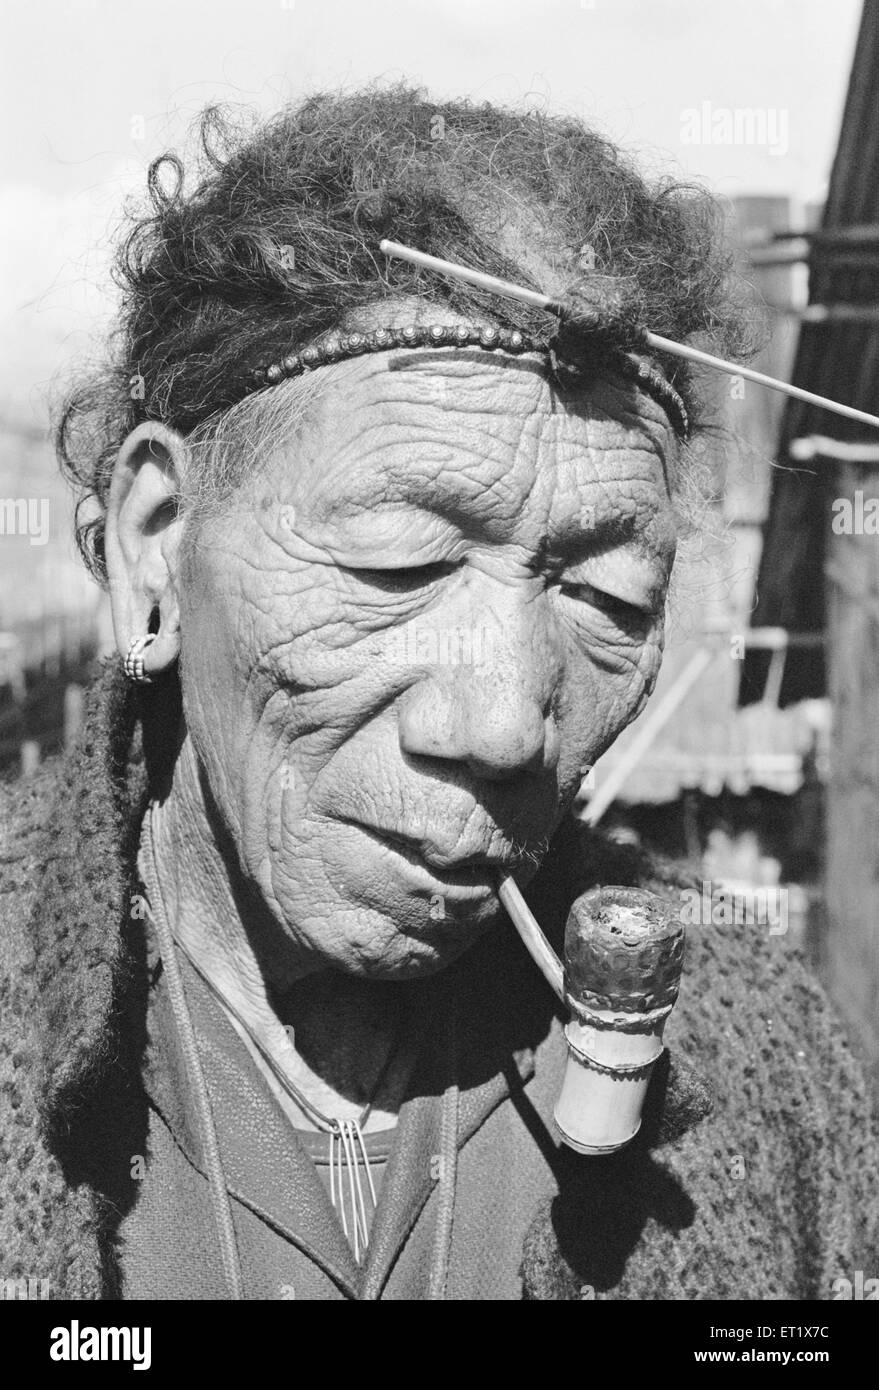 Member of Apa Tani tribe enjoys pipe smoking Ziro District headquarters of Lower Subansiri ; Arunachal Pradesh - Stock Image